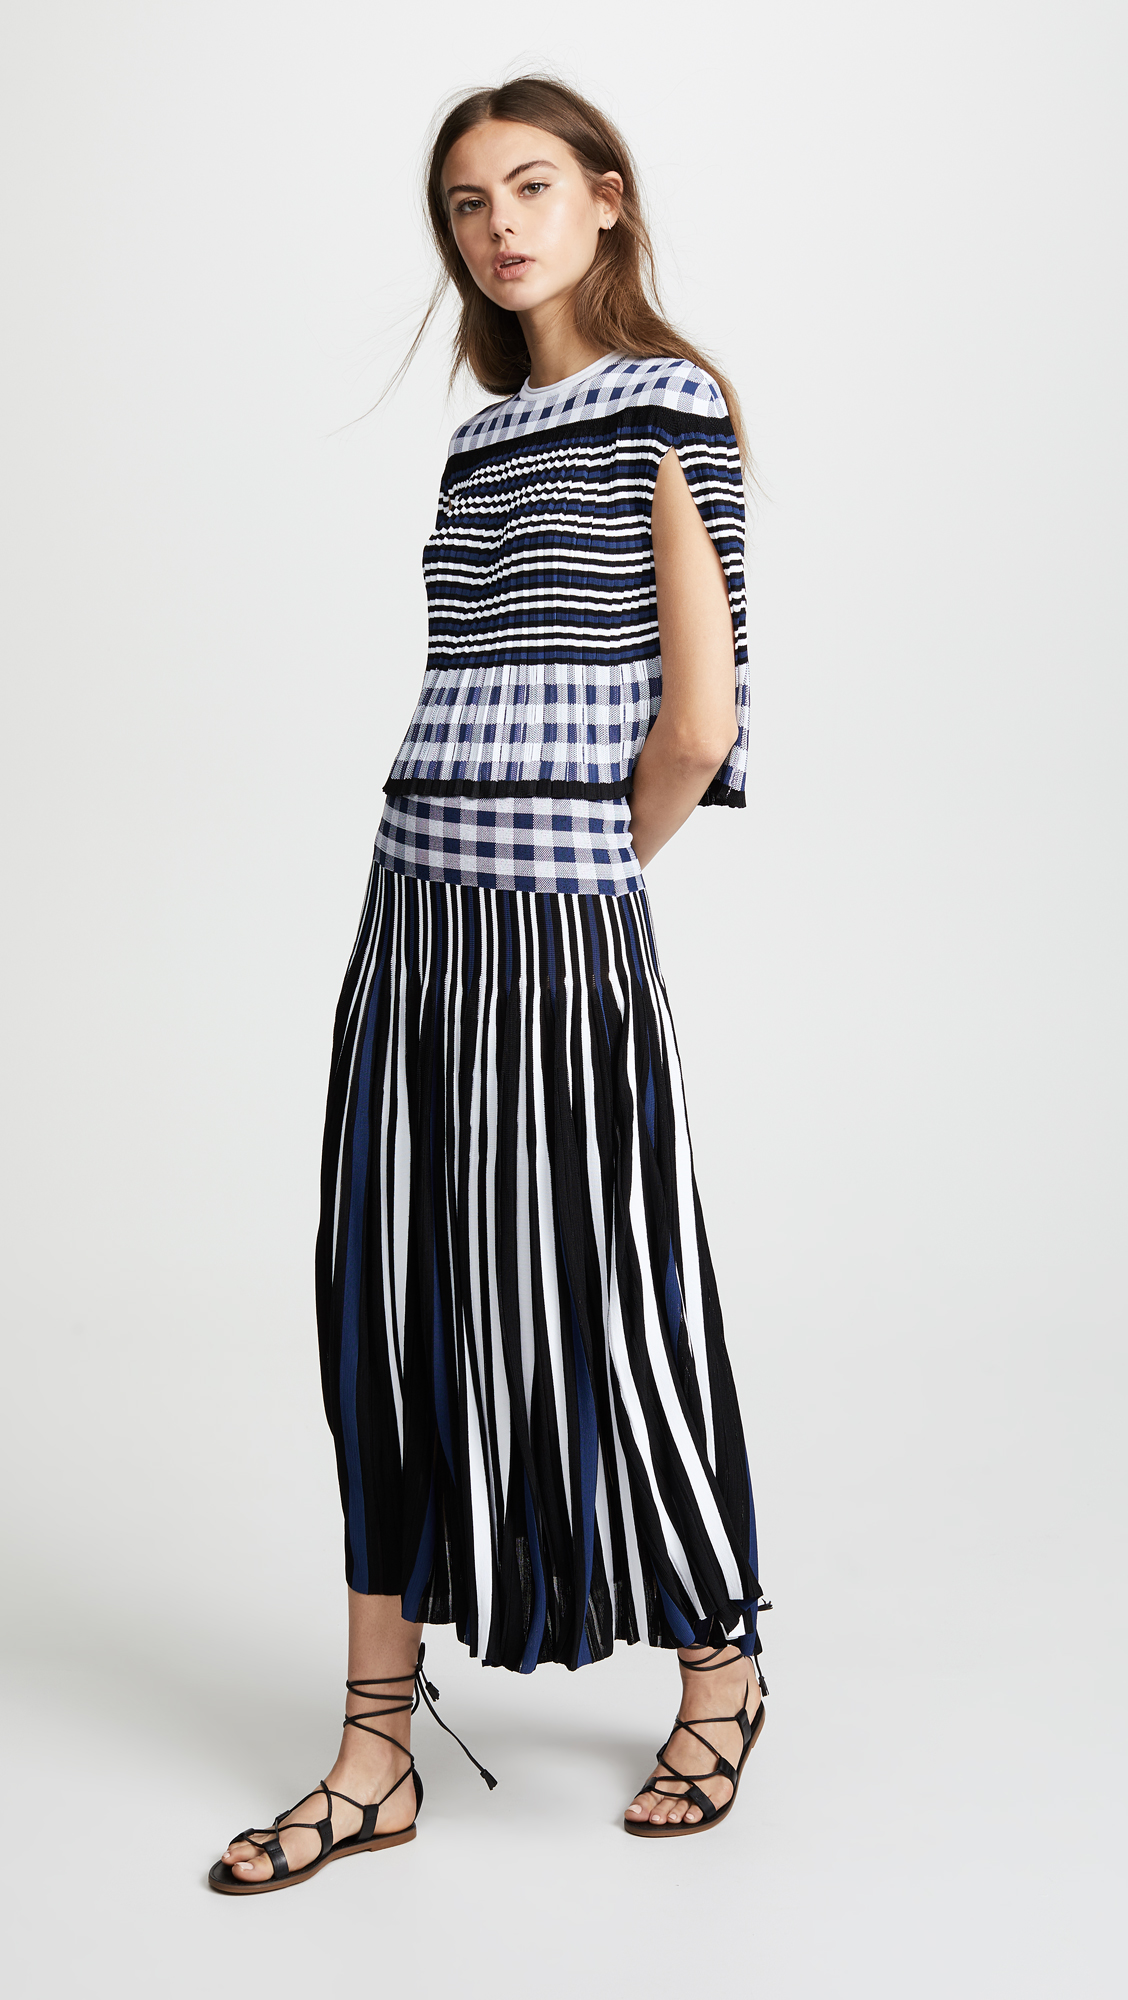 kollette sonia rykiel plaid pleated midi skirt the world 39 s largest fashion stores in one place. Black Bedroom Furniture Sets. Home Design Ideas